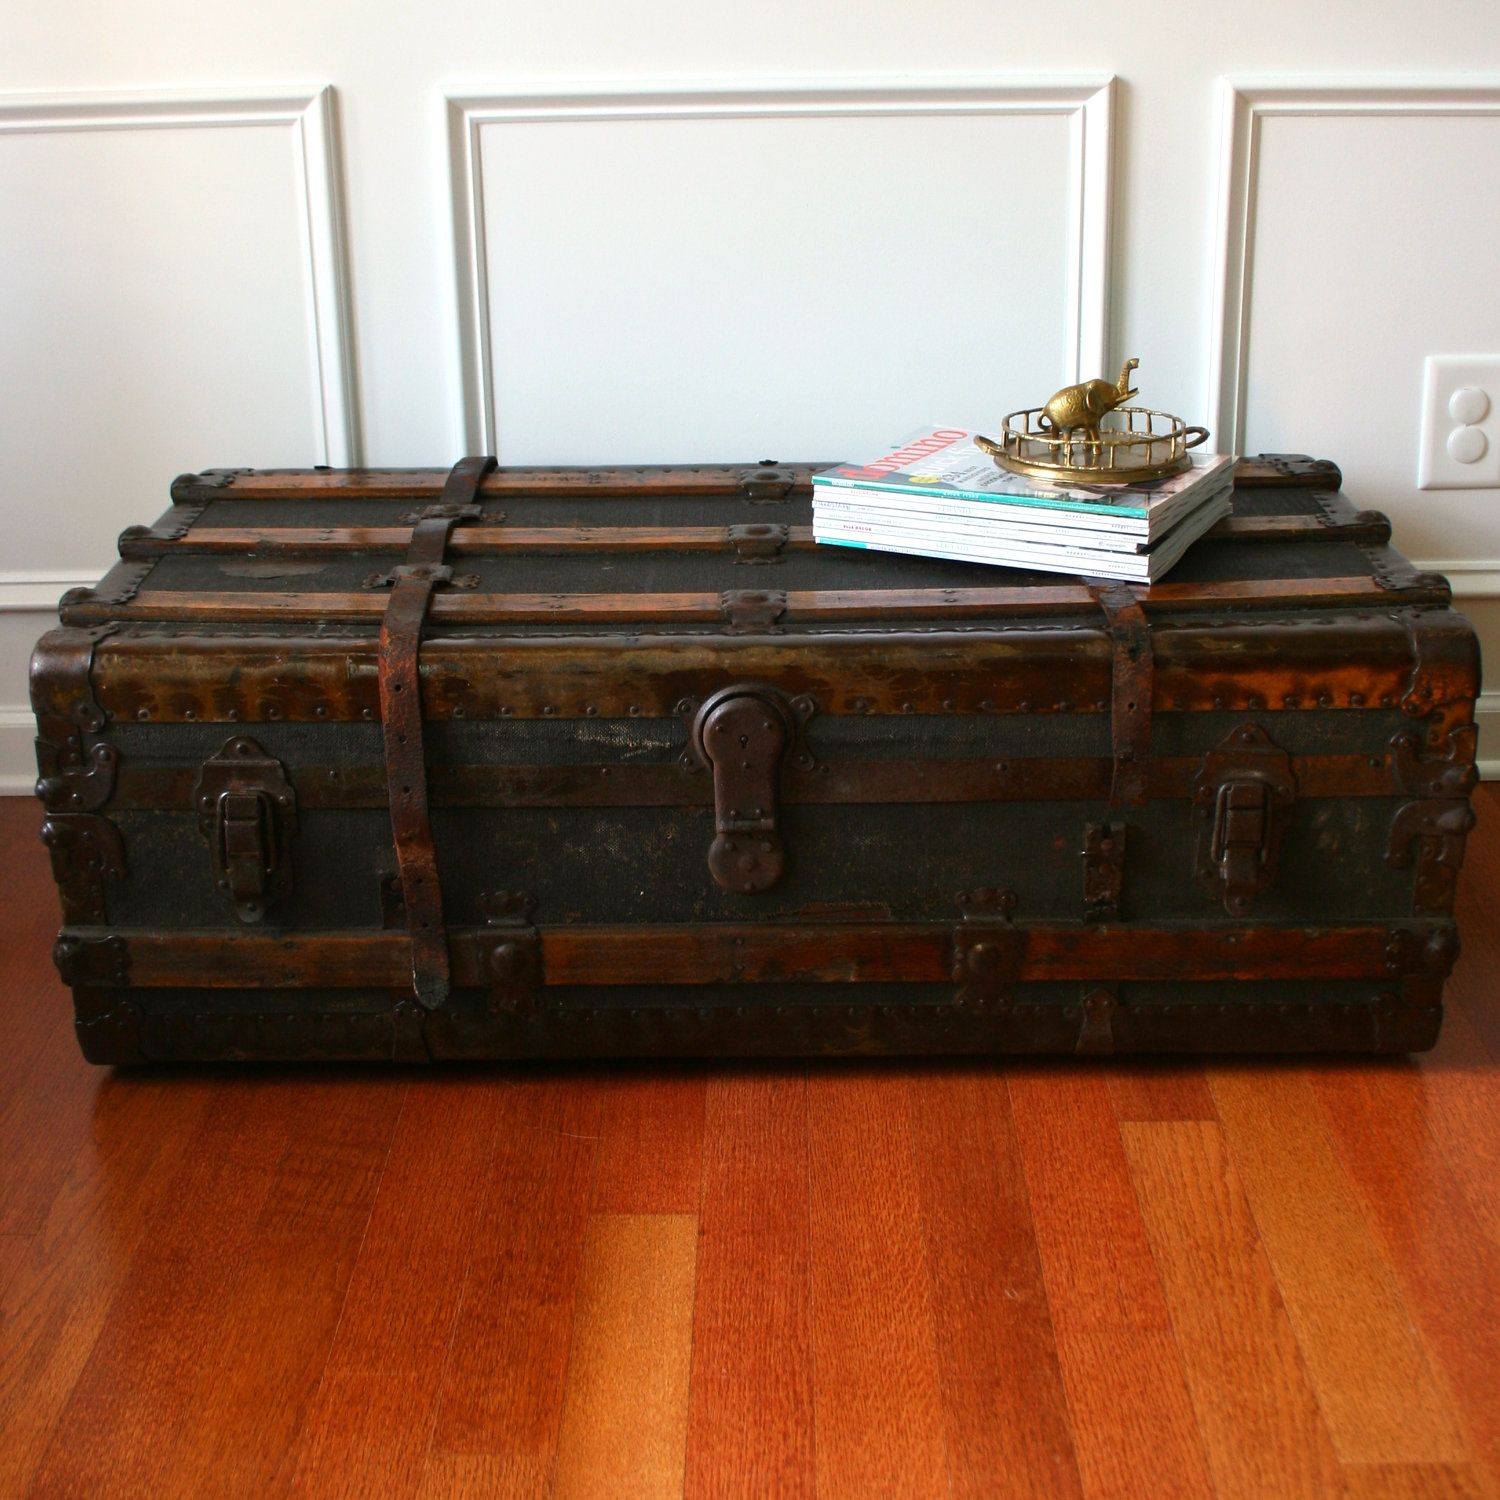 Luggage Trunks As Coffee Tables   Coffee table trunk ...